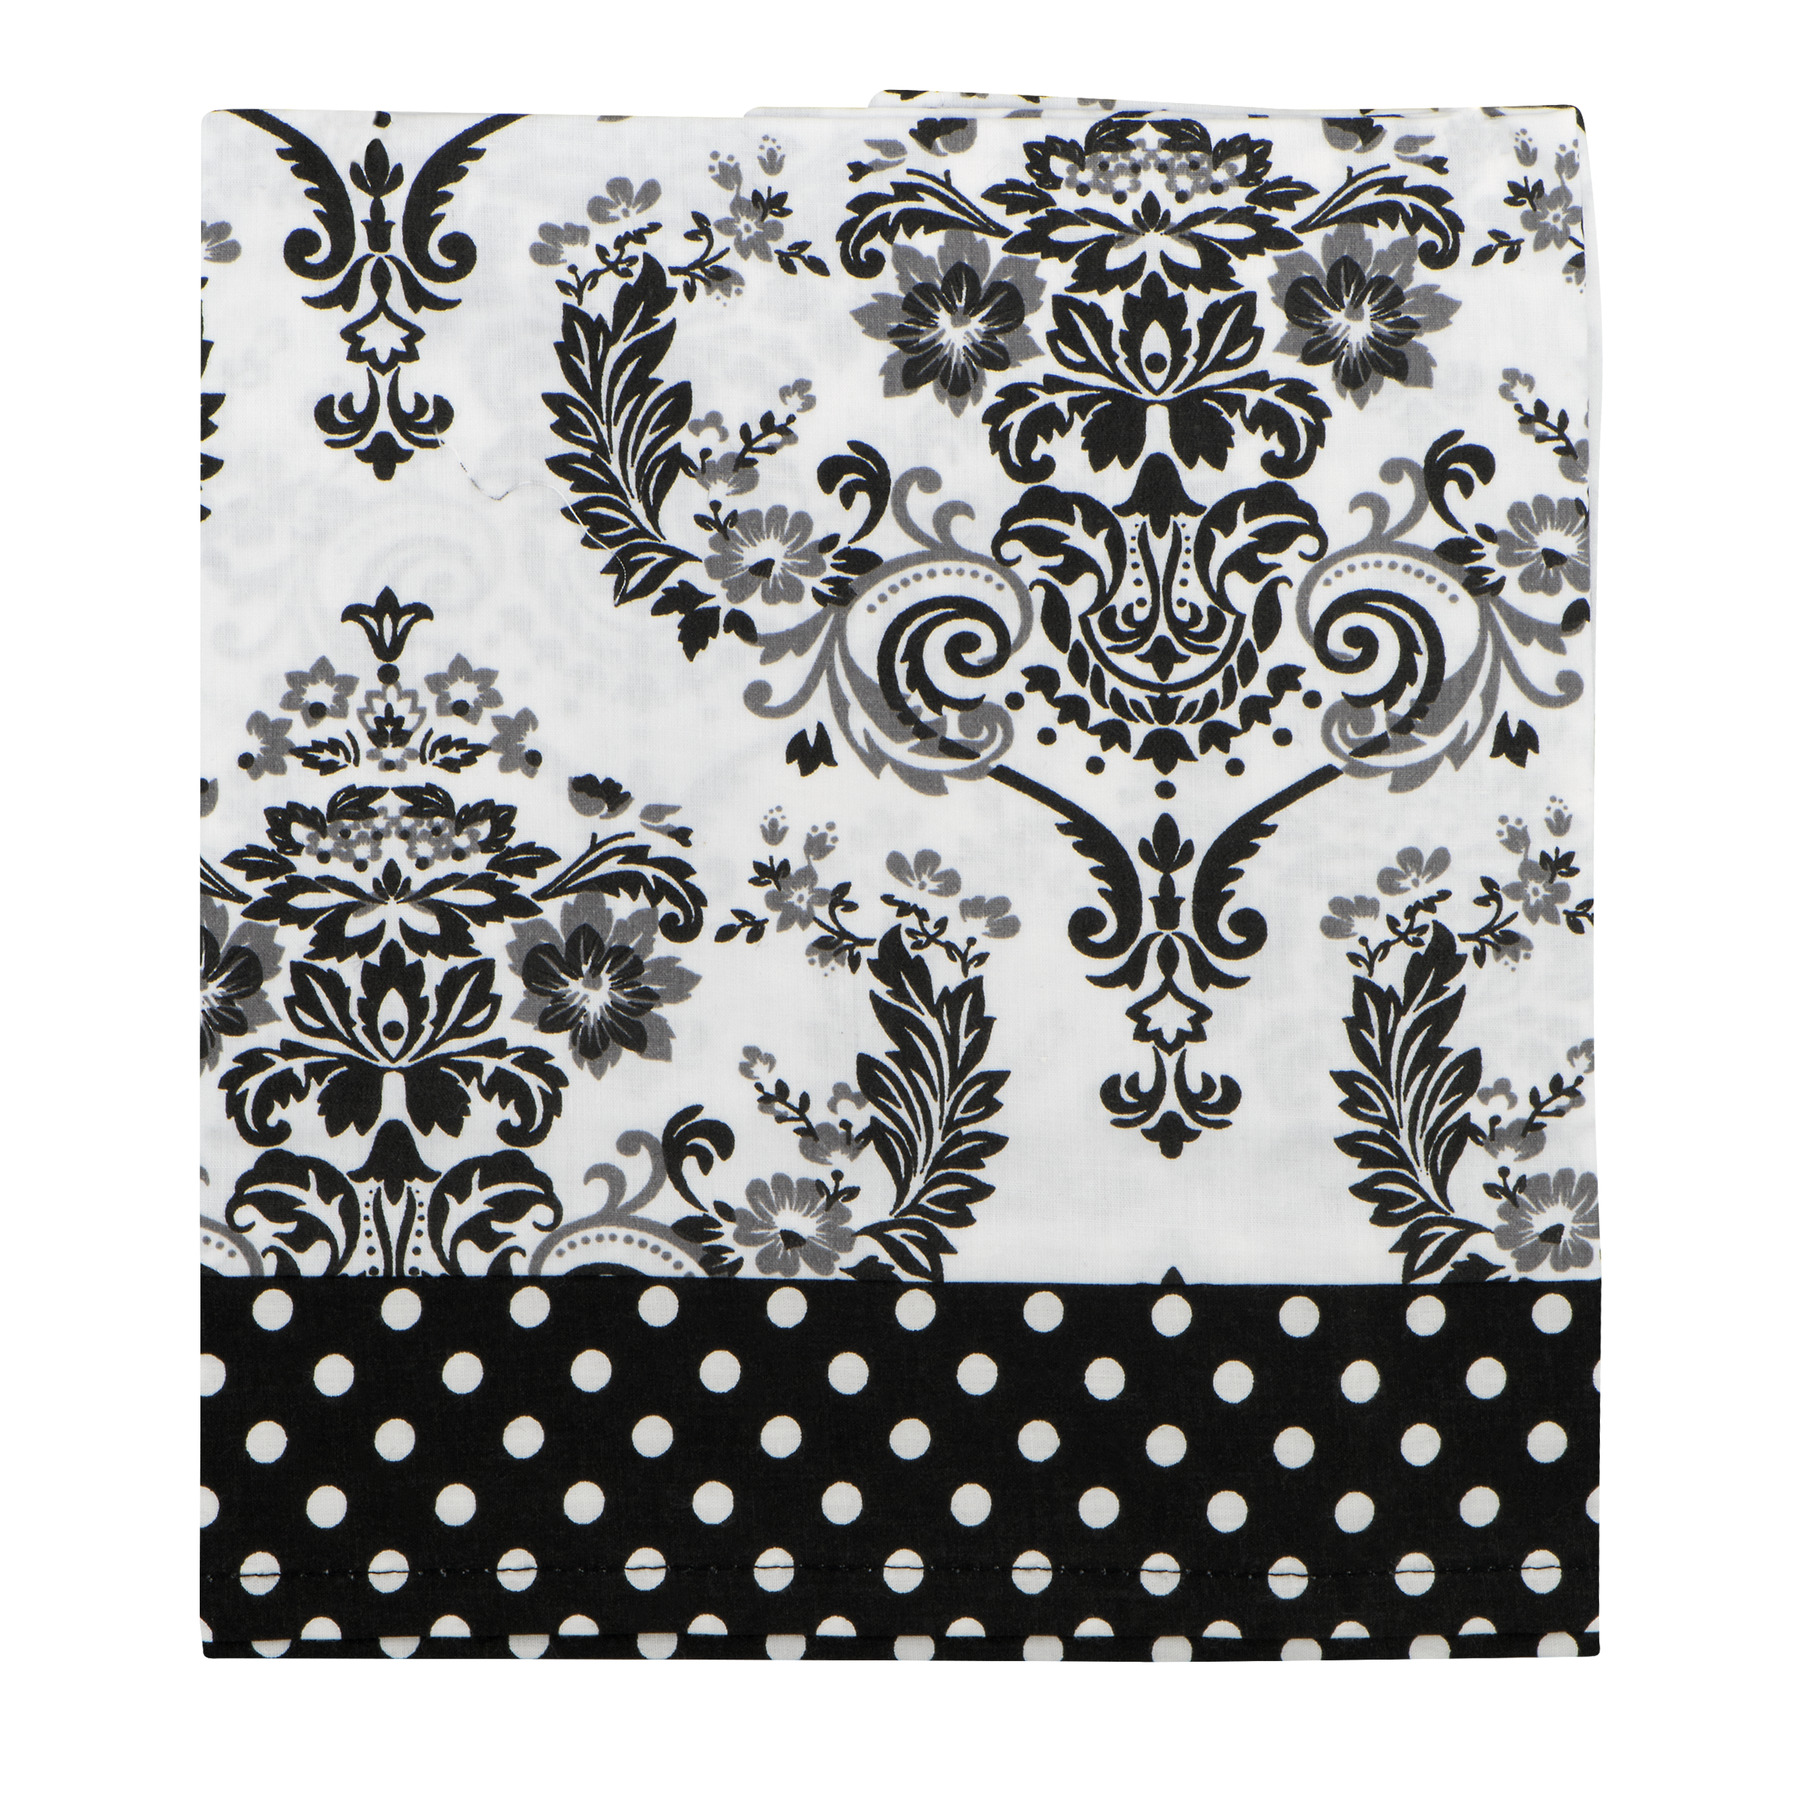 Bacati Window Valance Classic Damask White Black, 1.0 CT by Bacati